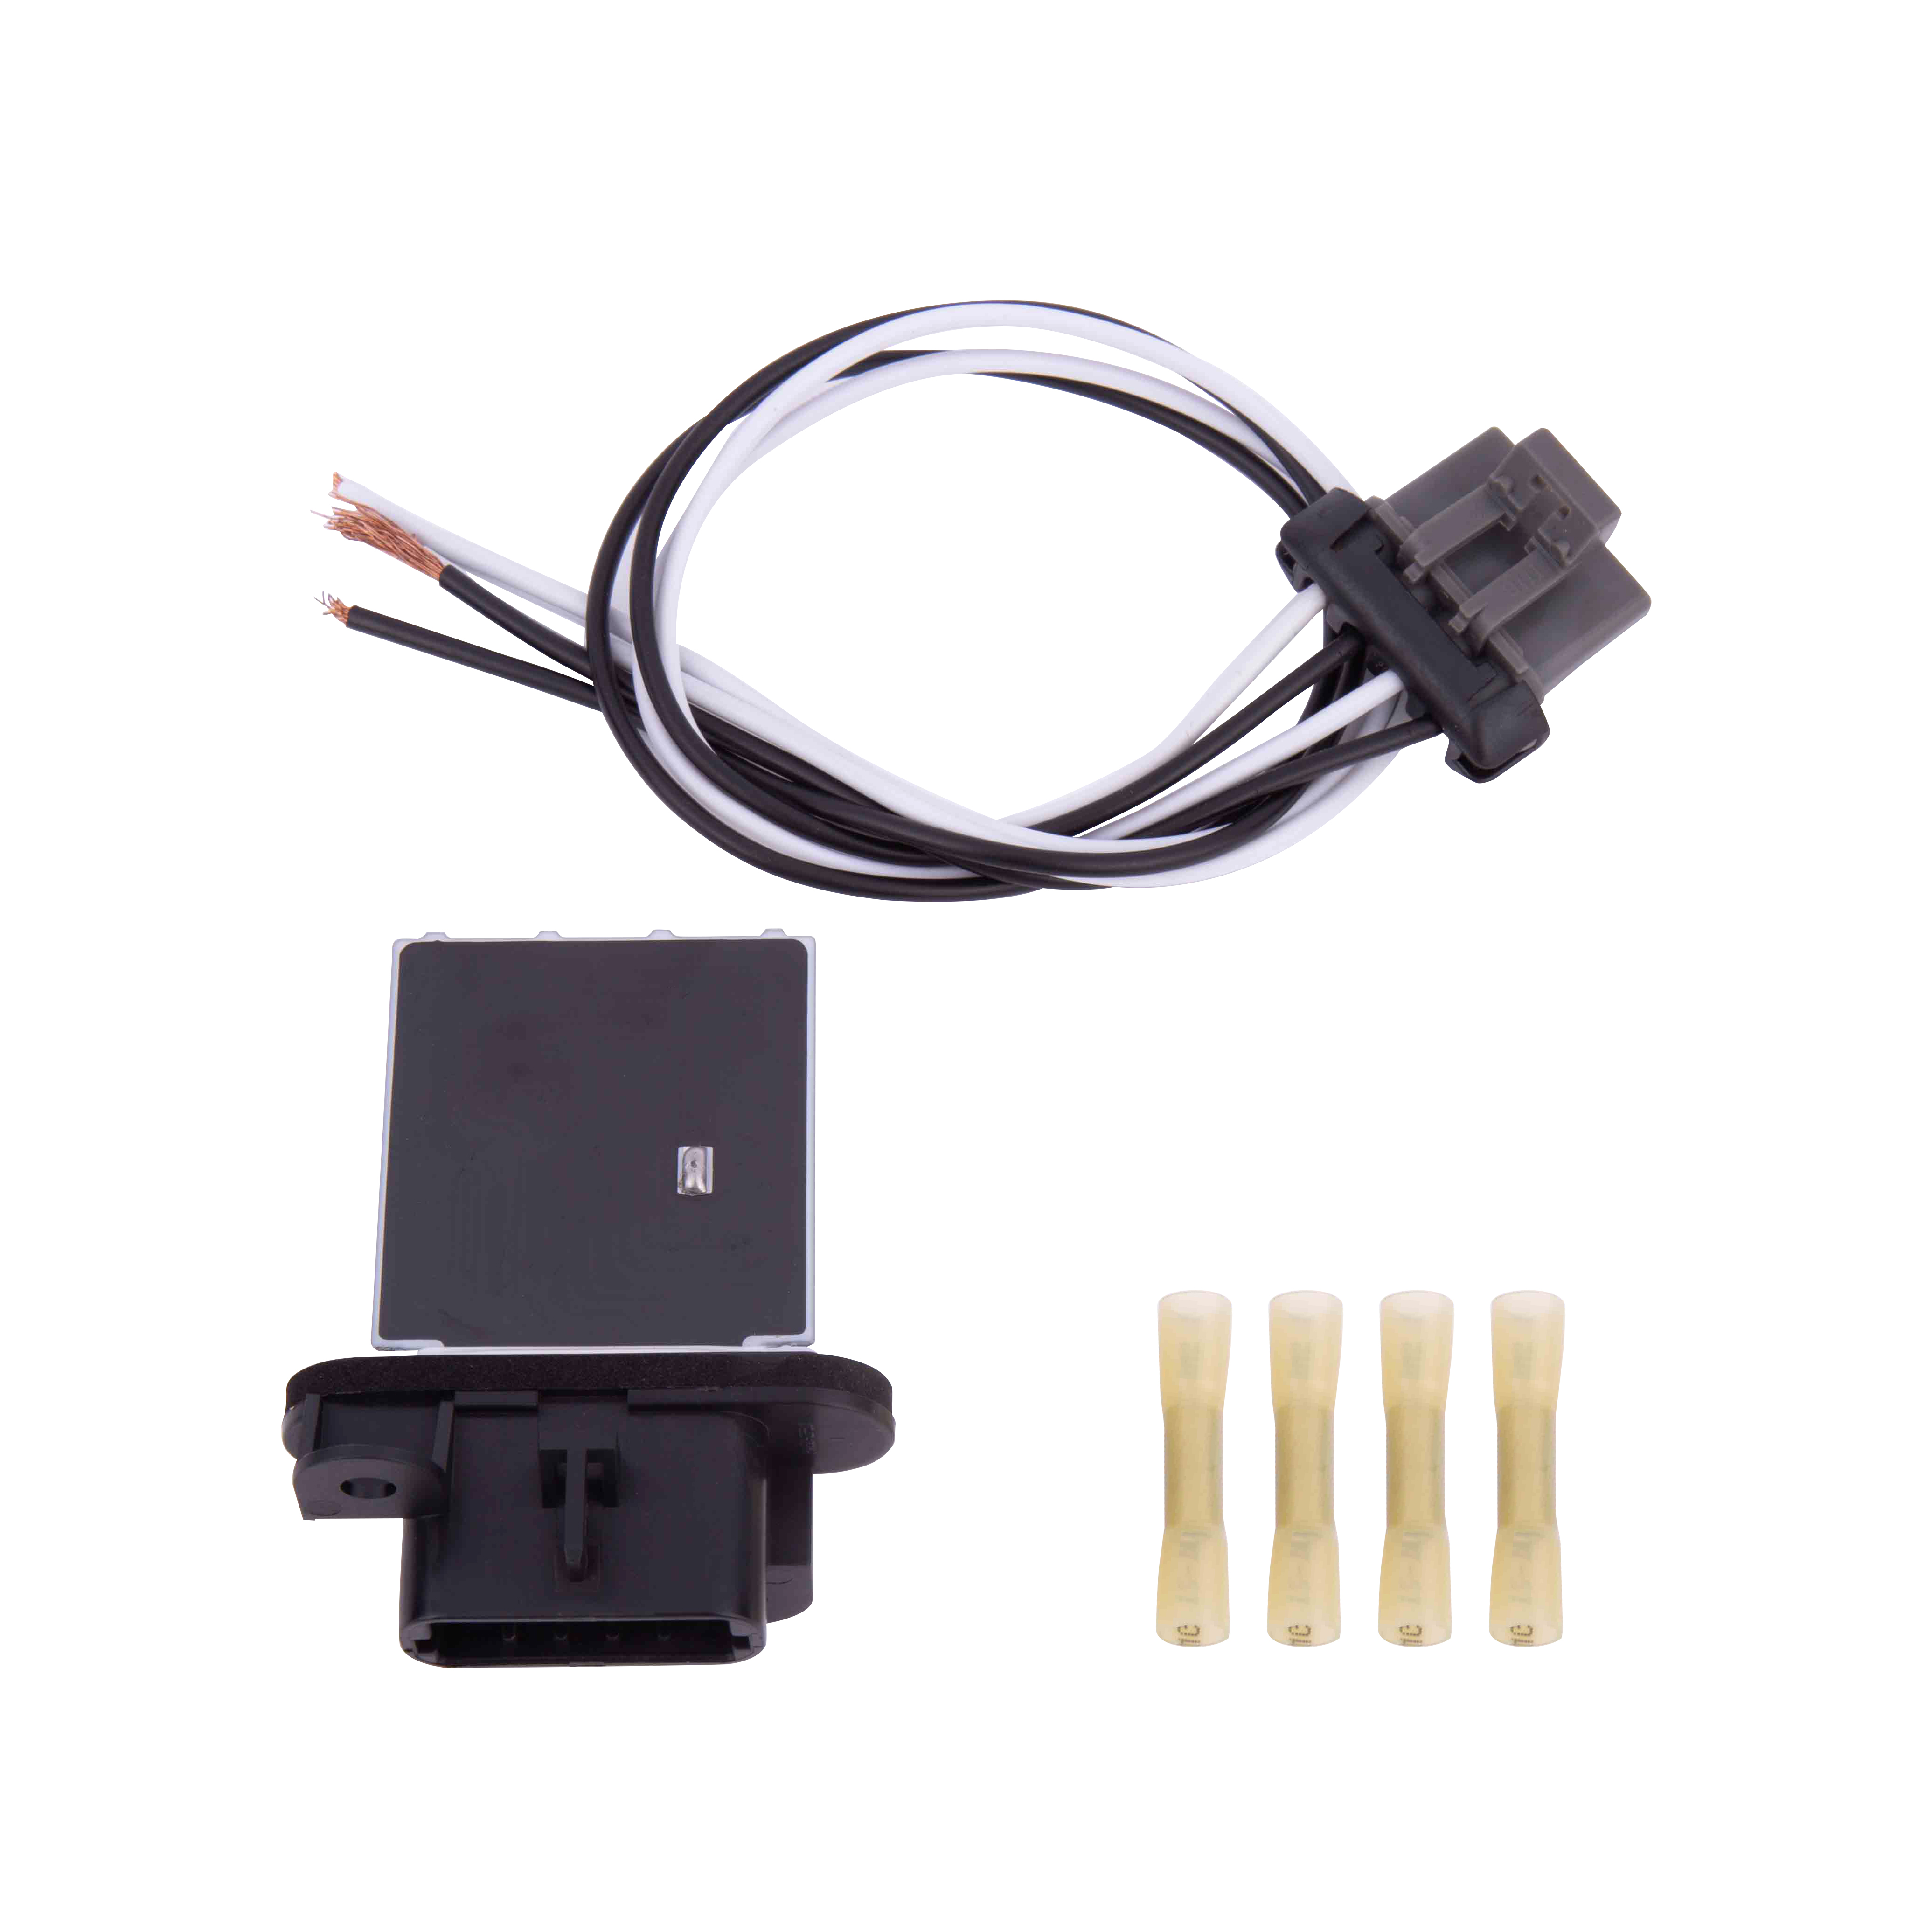 AC Blower Motor Resistor Kit - Replaces 973-582 Fits Tacoma Vehicles Image